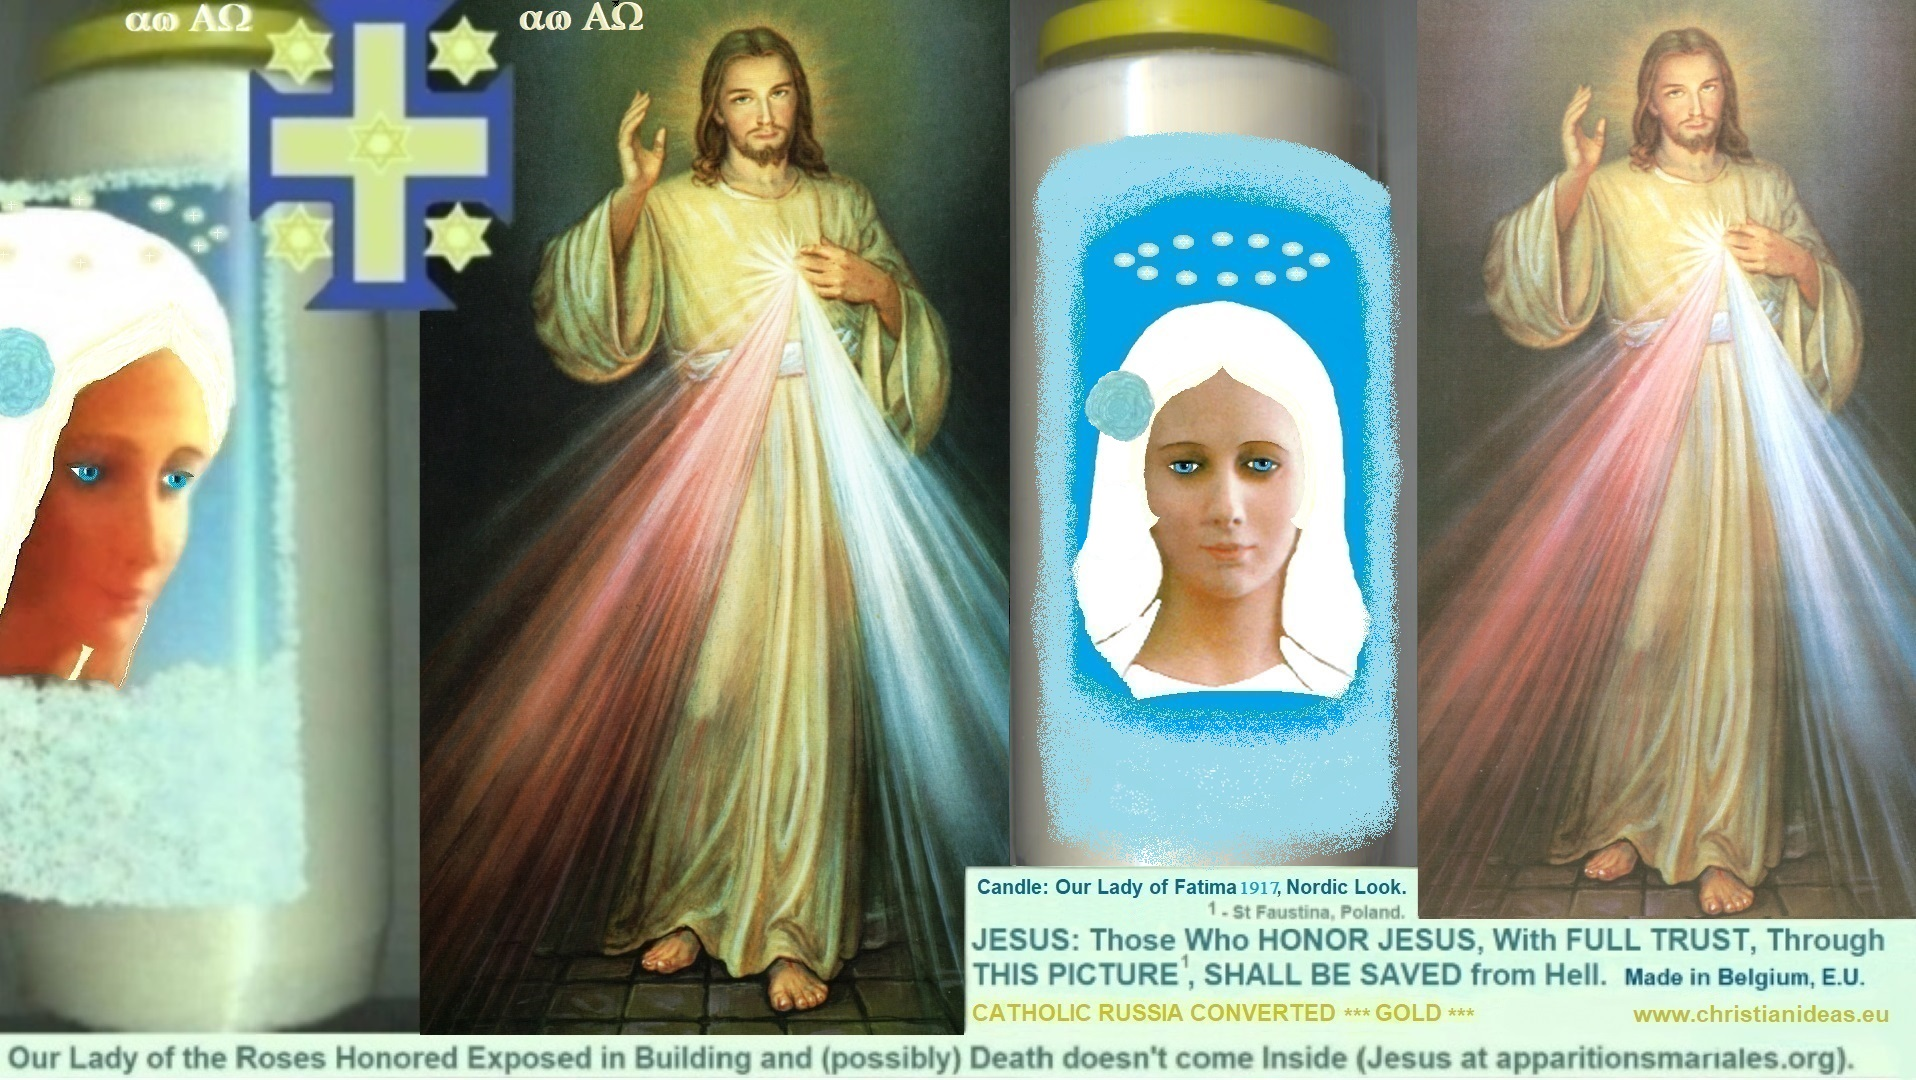 Christian Ideas Background 		 		Candle: Our Lady of the Roses Honored Exposed and Death doesn't Enter inside. 		 		Jesus Divine Mercy: Those who Honor Jesus, with Full Trust, Through this Picture , Shall be Saved